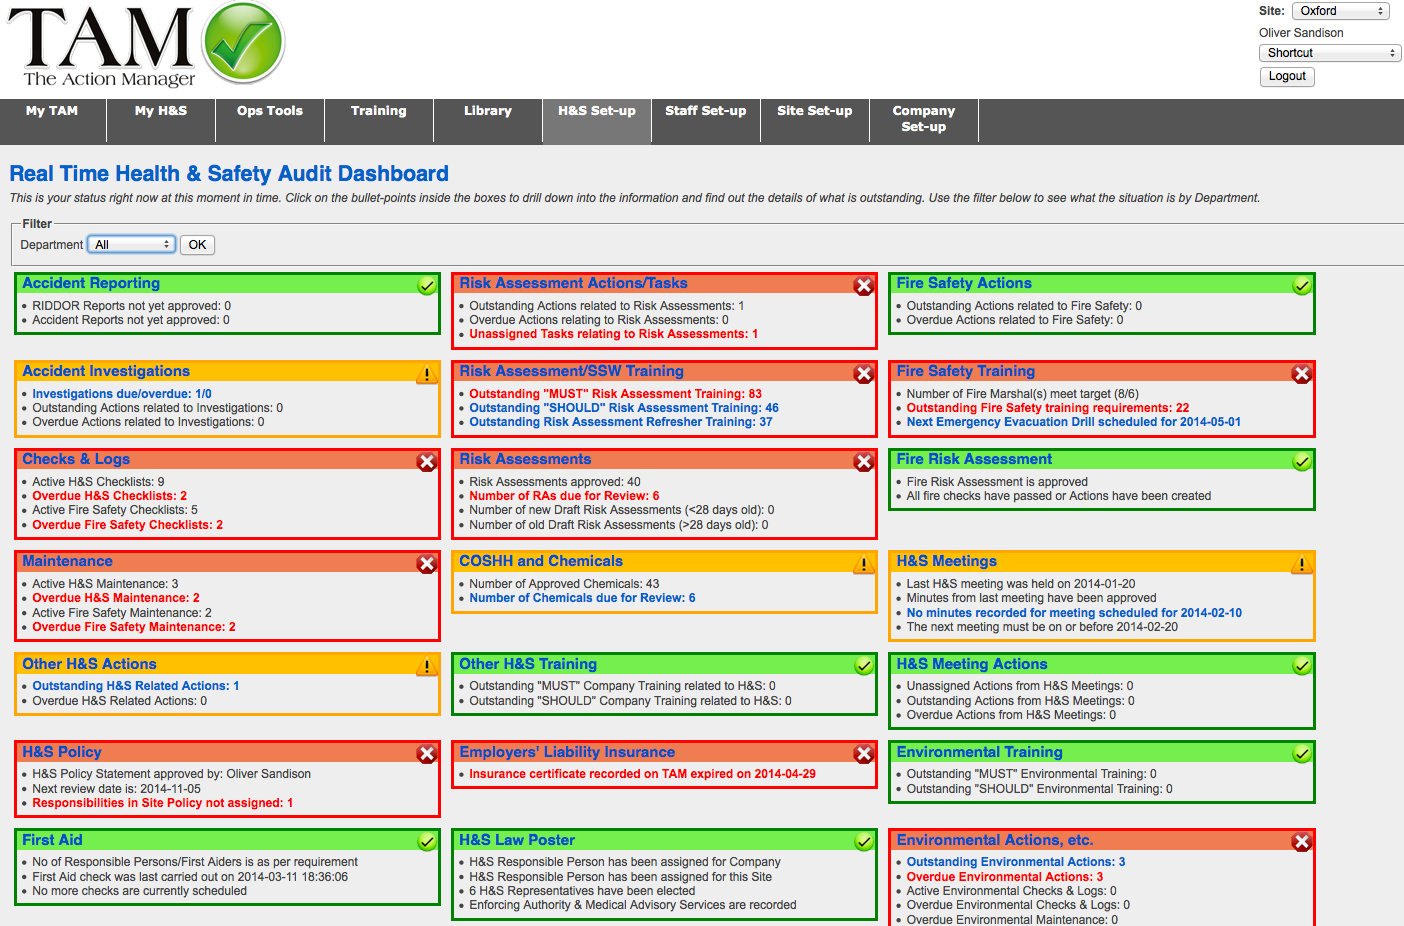 safety dashboard template - tam health and safety software 3 months free trial